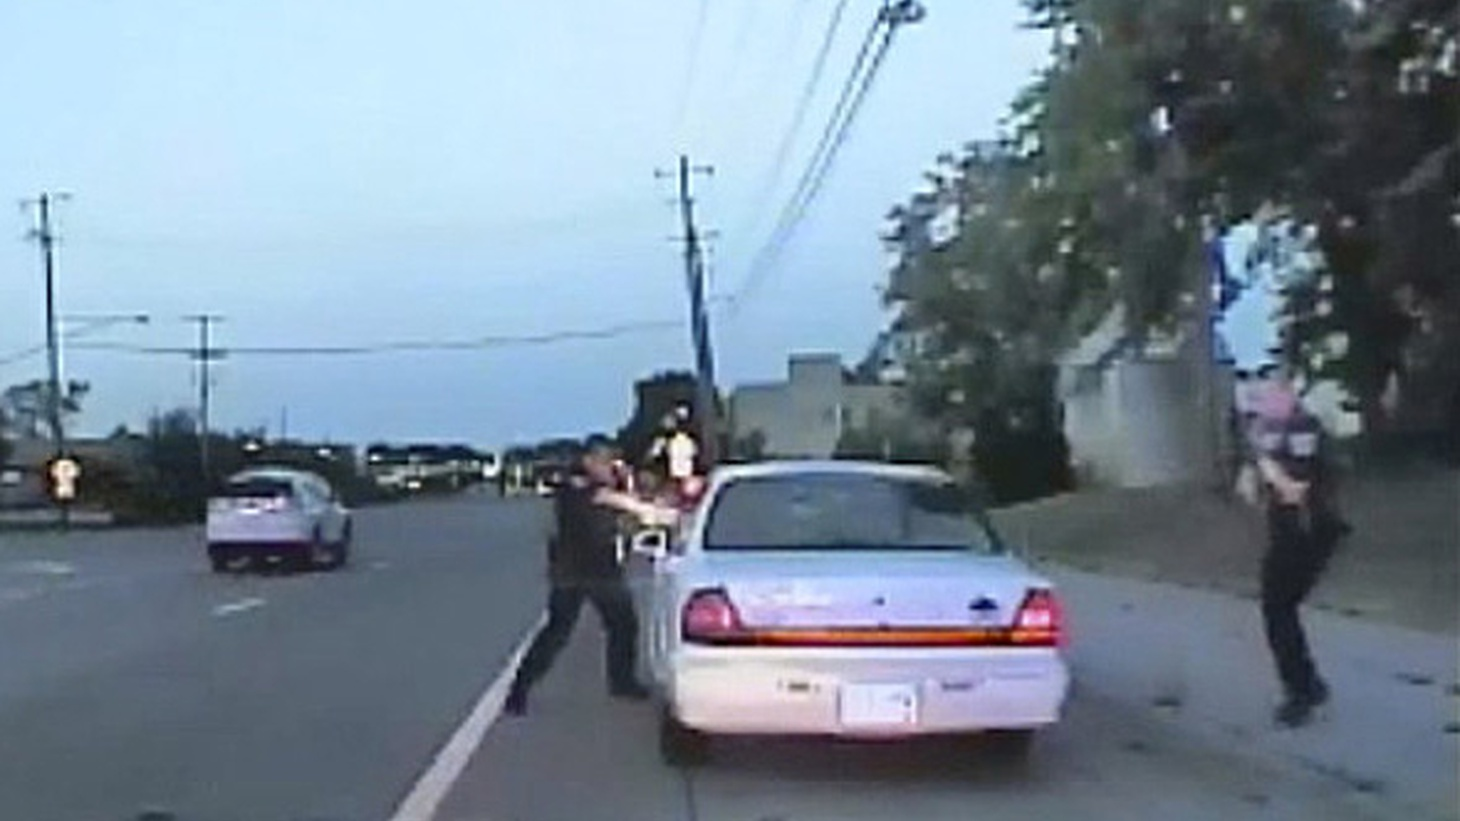 Police officer Jeronimo Yanez has been cleared of all charges in the shooting death of a black man, Philando Castile, a year ago in Falcon Heights, Minnesota. Yanez pulled Castile over for a broken taillight, and Castile — who had a concealed carry permit — told Yanez he had a gun.